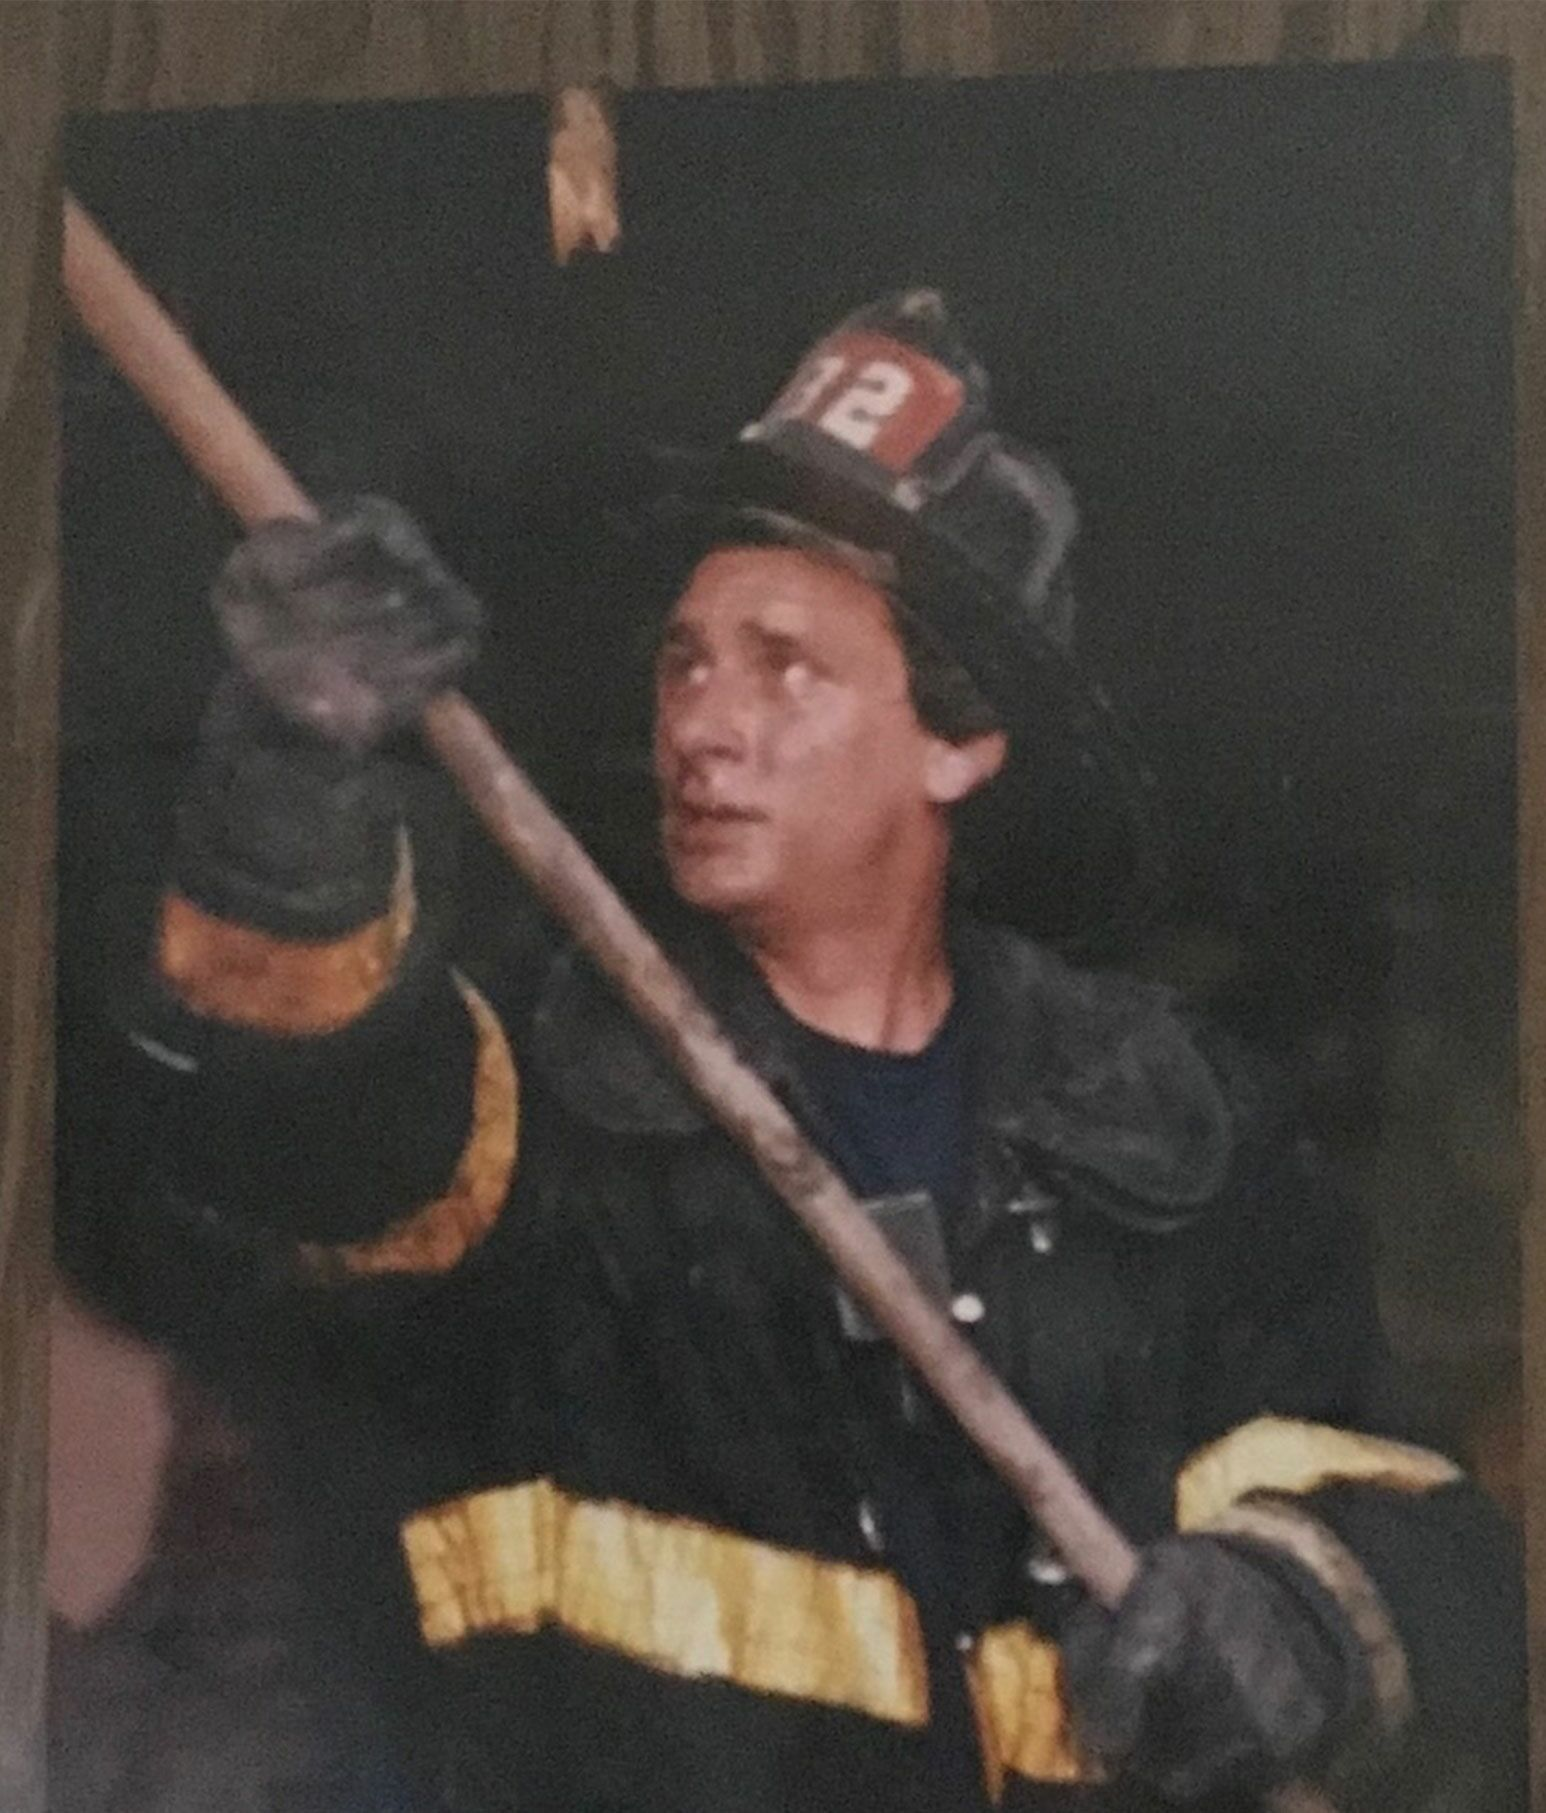 An aged photo of a fireman holding a pole against something not seen in the photo